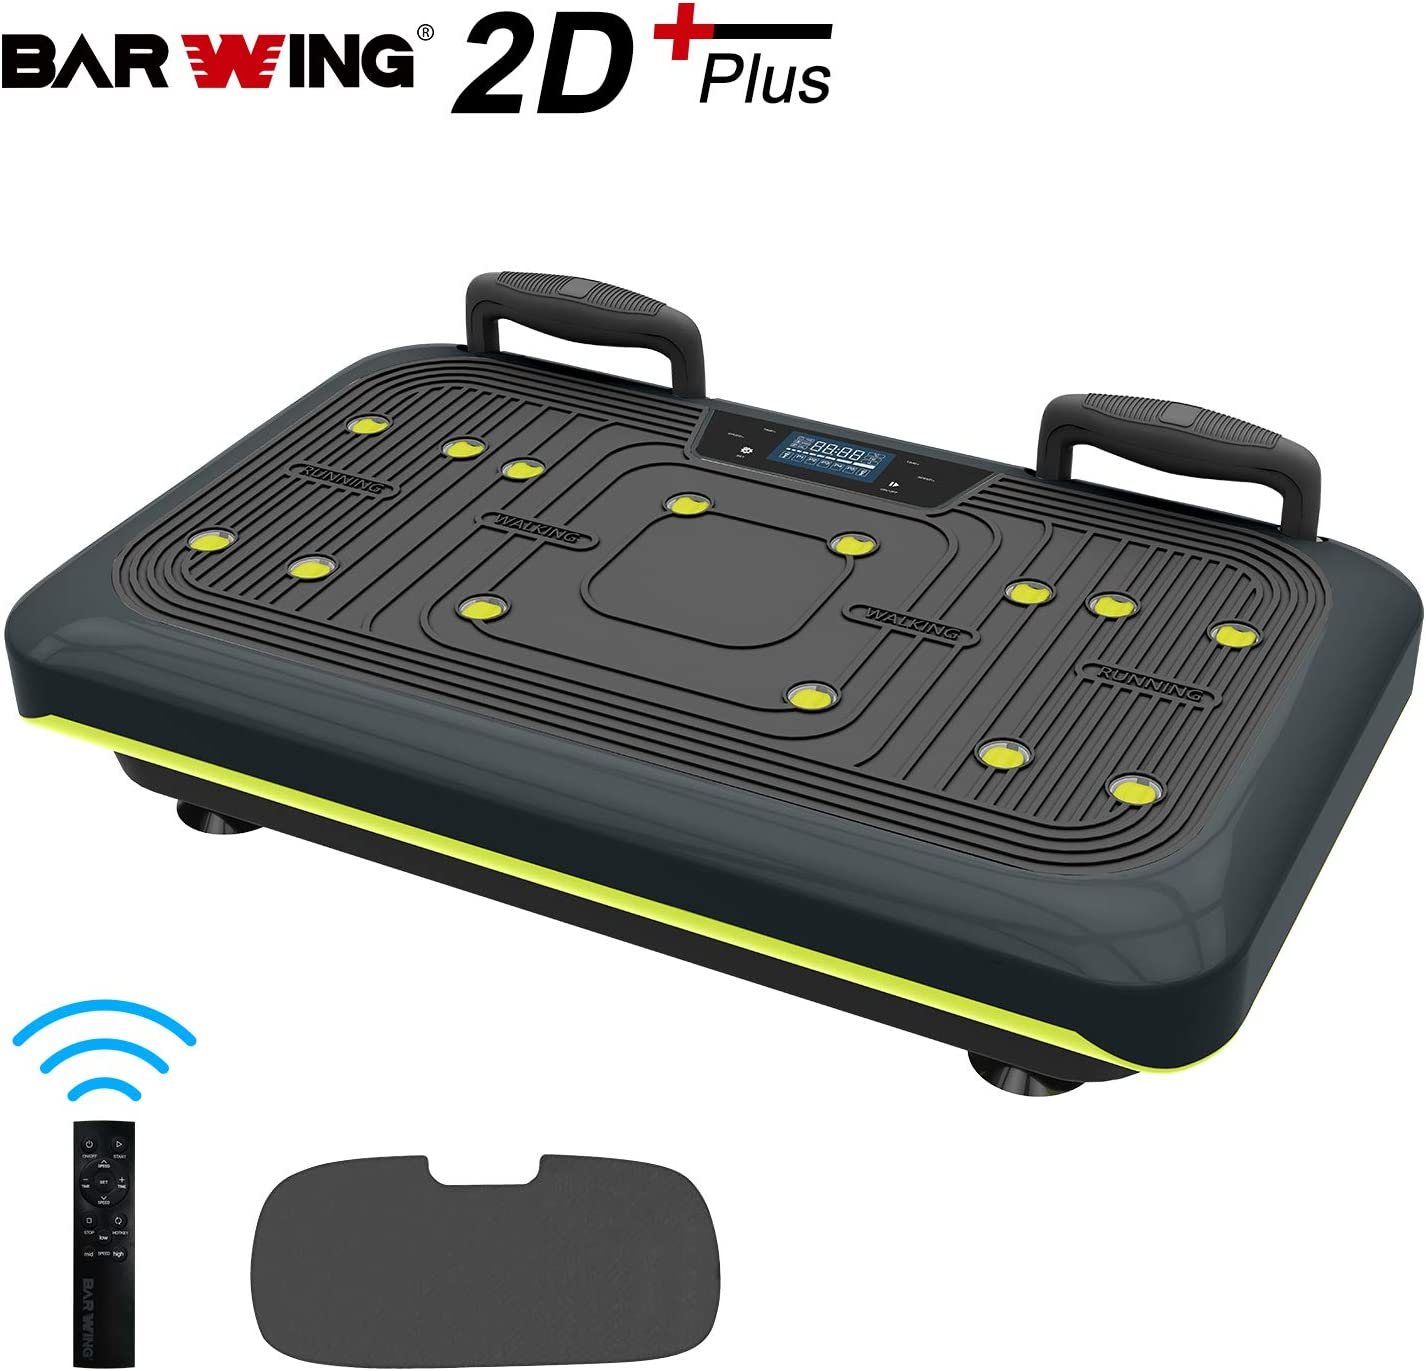 BARWING Vibration Platform, Whole Body Workout Vibration Fitness Machine, Push Up Bars, Home Training Equipment for Body Shape Massage